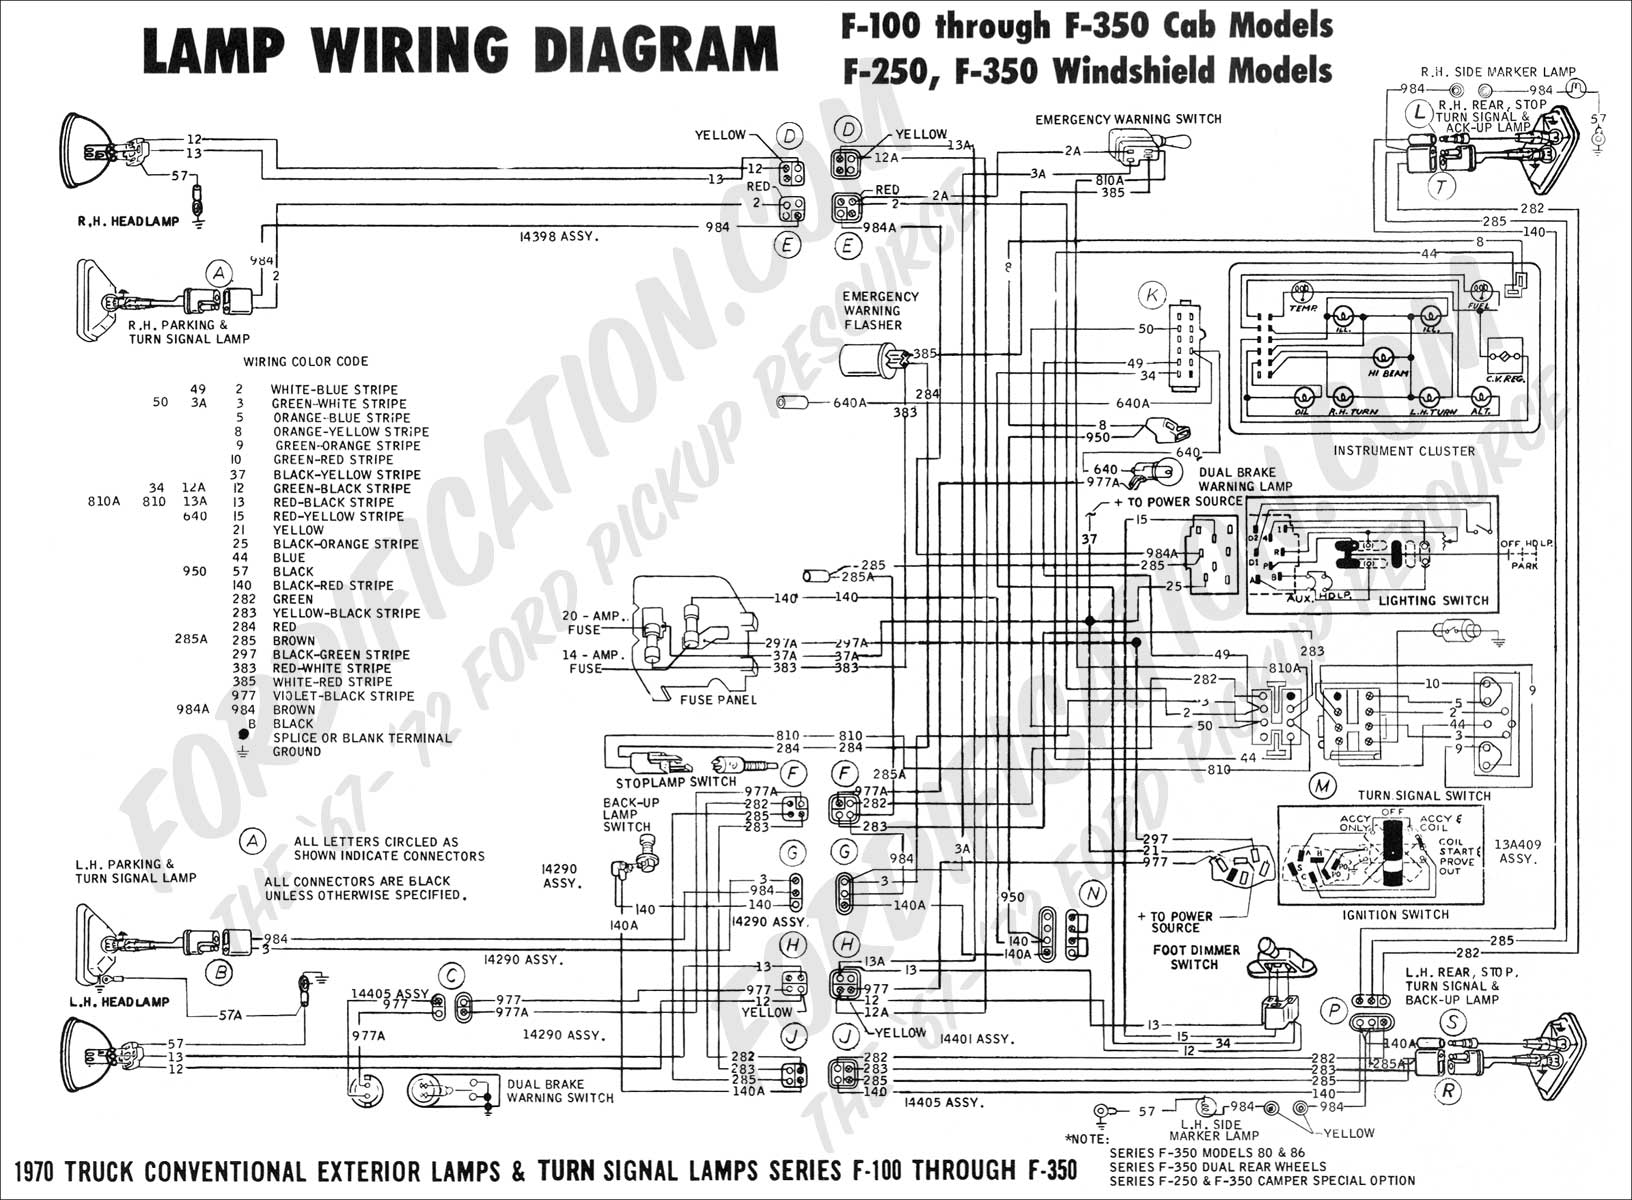 1990 ford f150 wiper motor wiring diagram for 3 way switch with multiple lights 79 f 250 diagrams schematic manual e books diesel parts